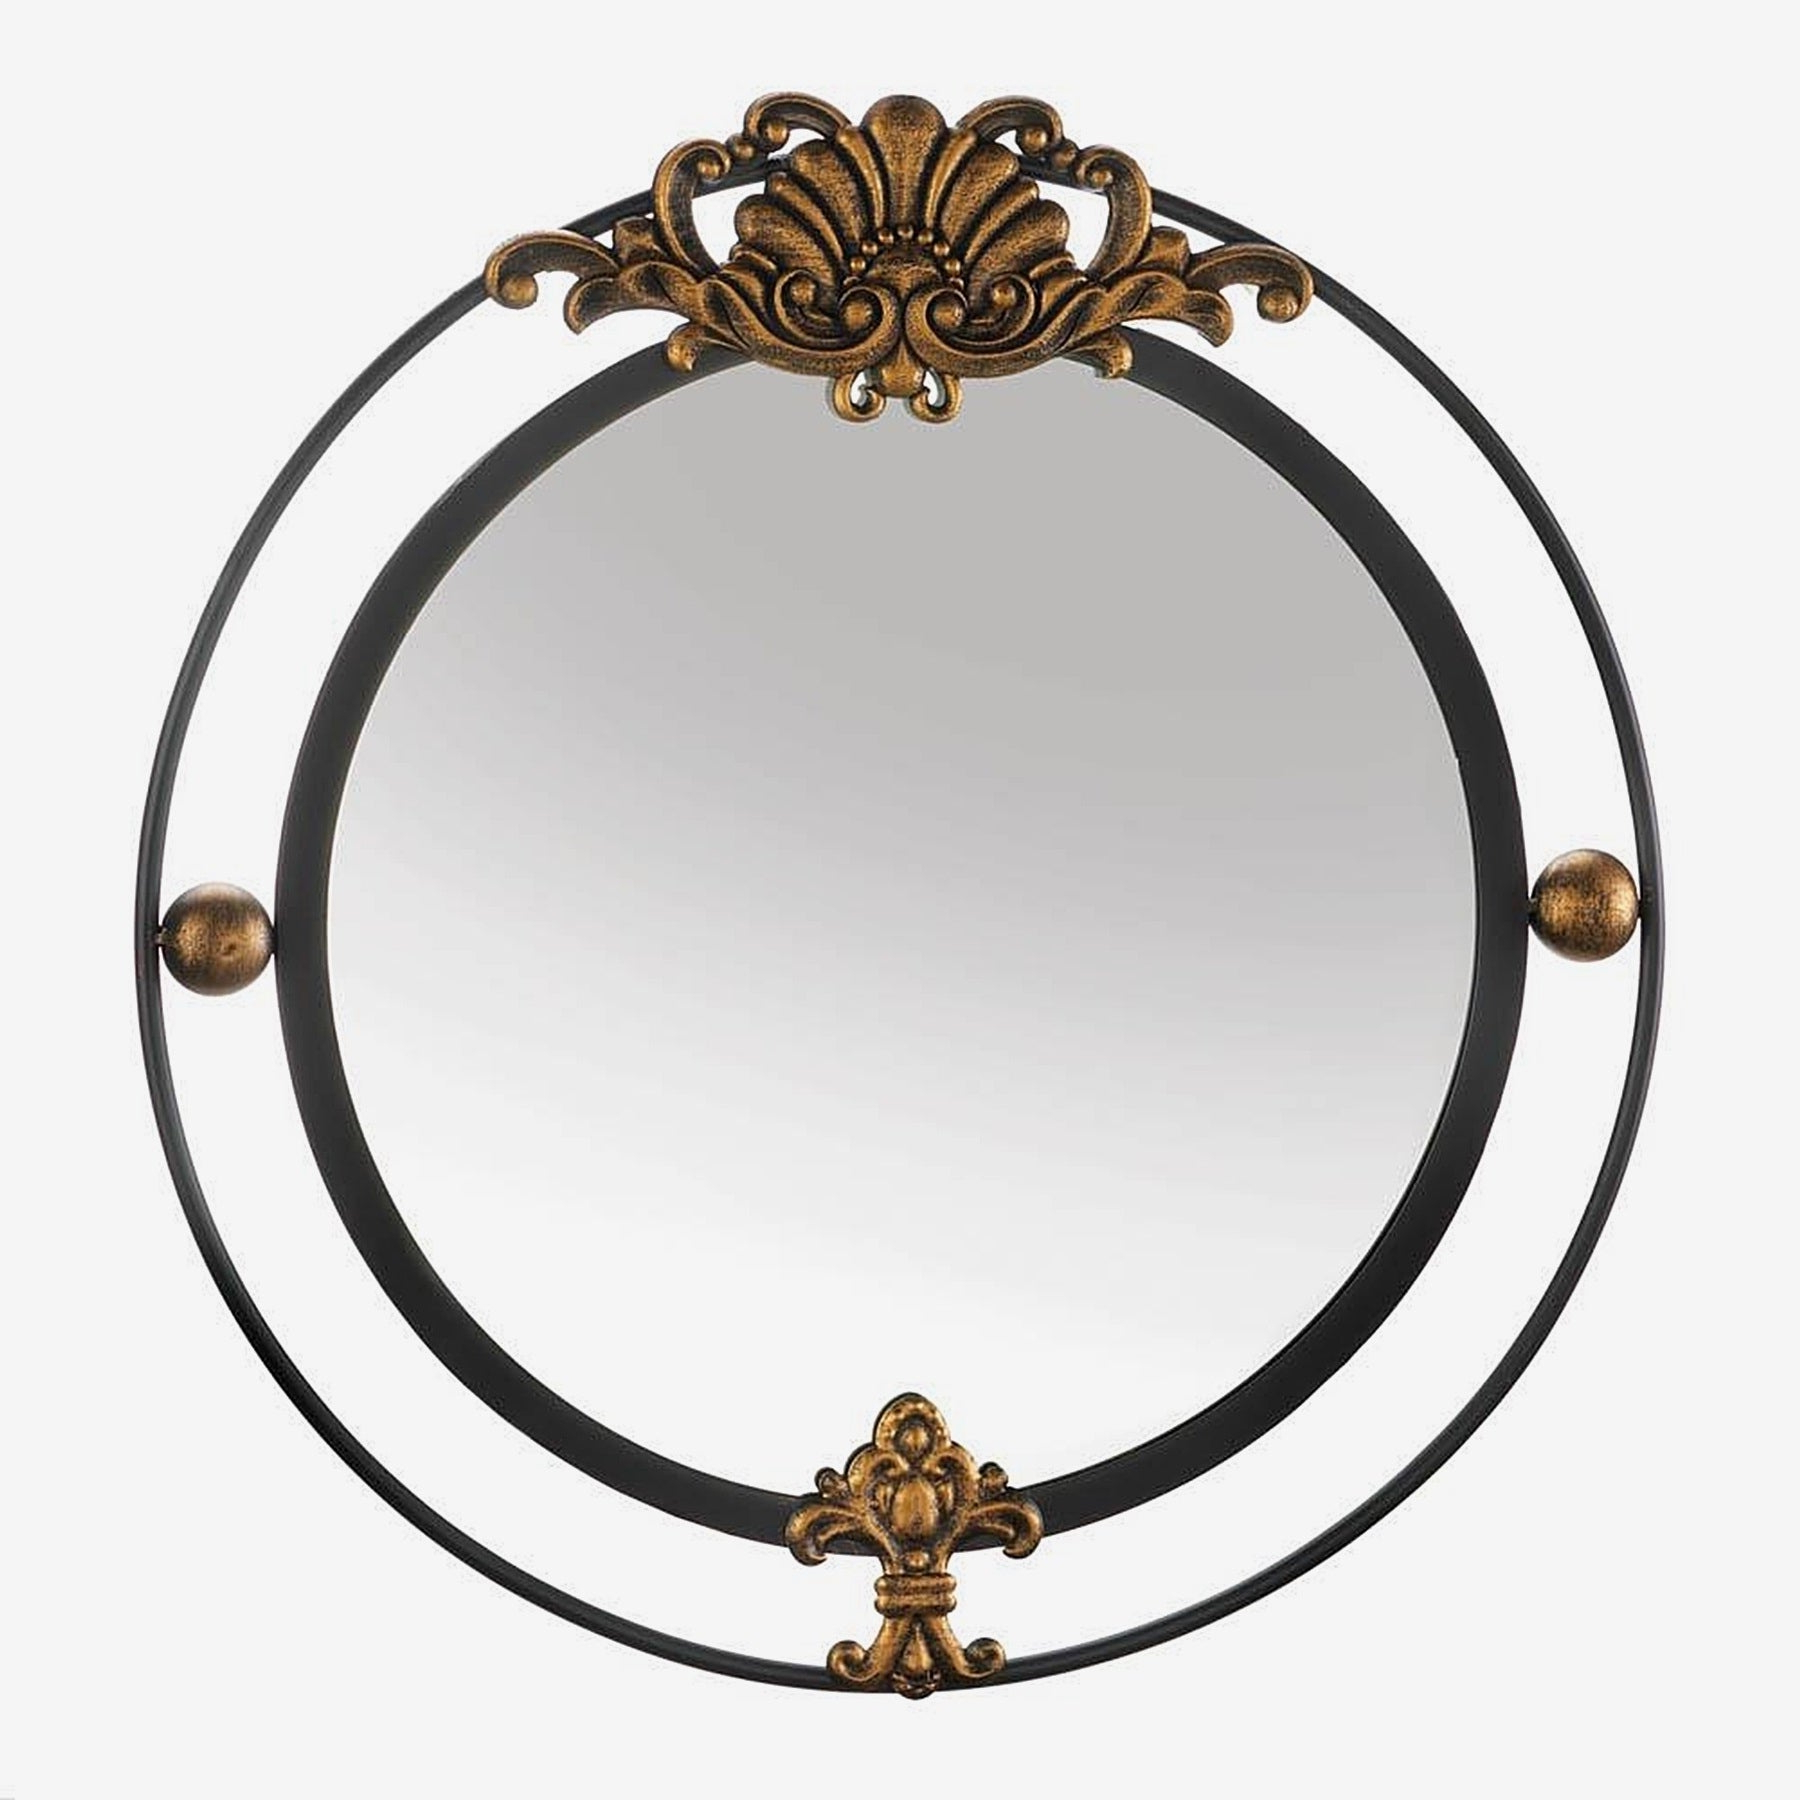 Preferred Decorative Round Wall Mirrors Within Garfield Decorative Round Wall Mirror – Black/gold (Gallery 18 of 20)